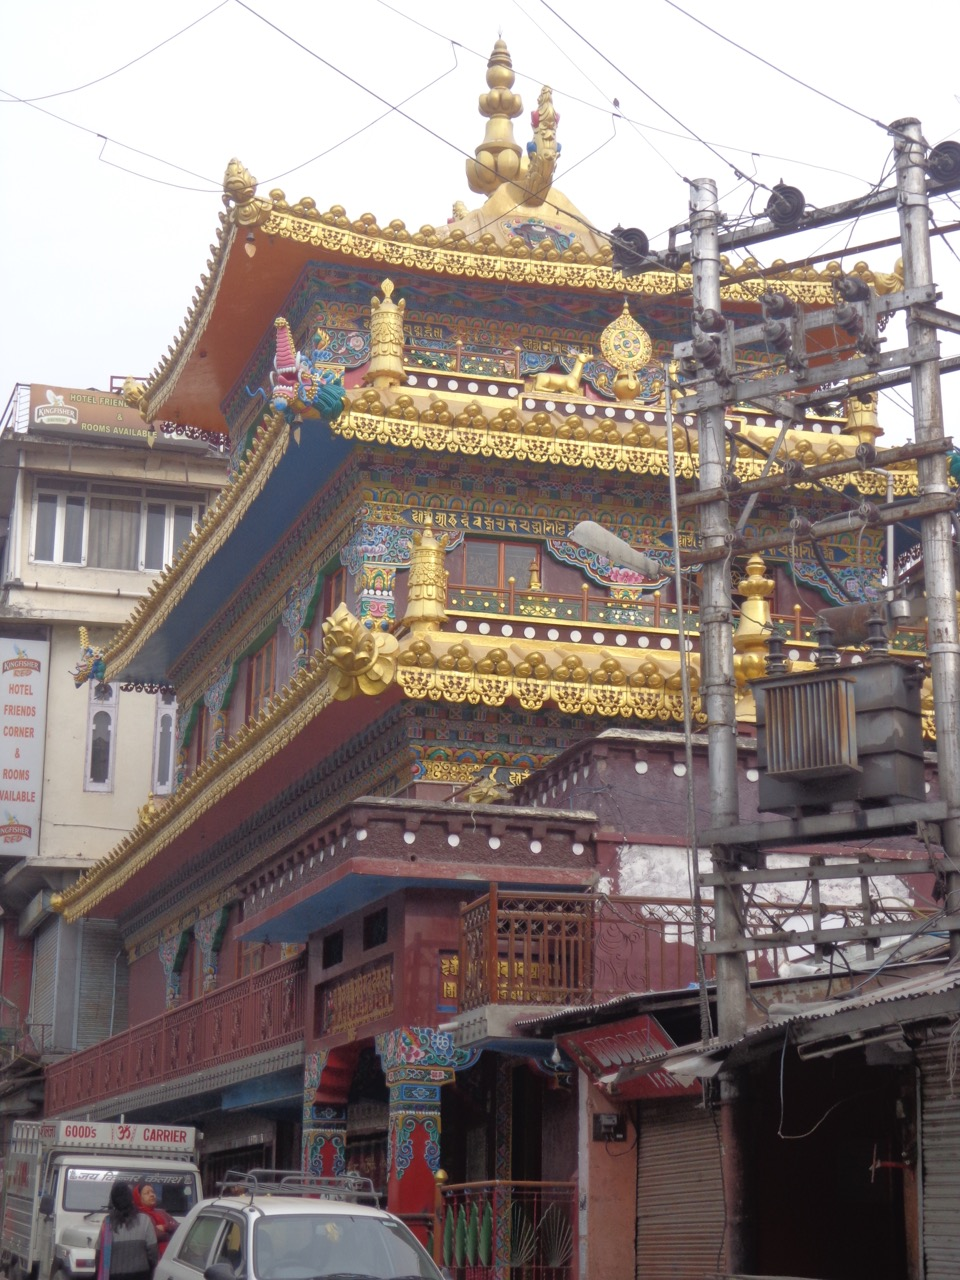 Kalachakra Temple sandwiched between modern eateries, shops and electrical transformer.